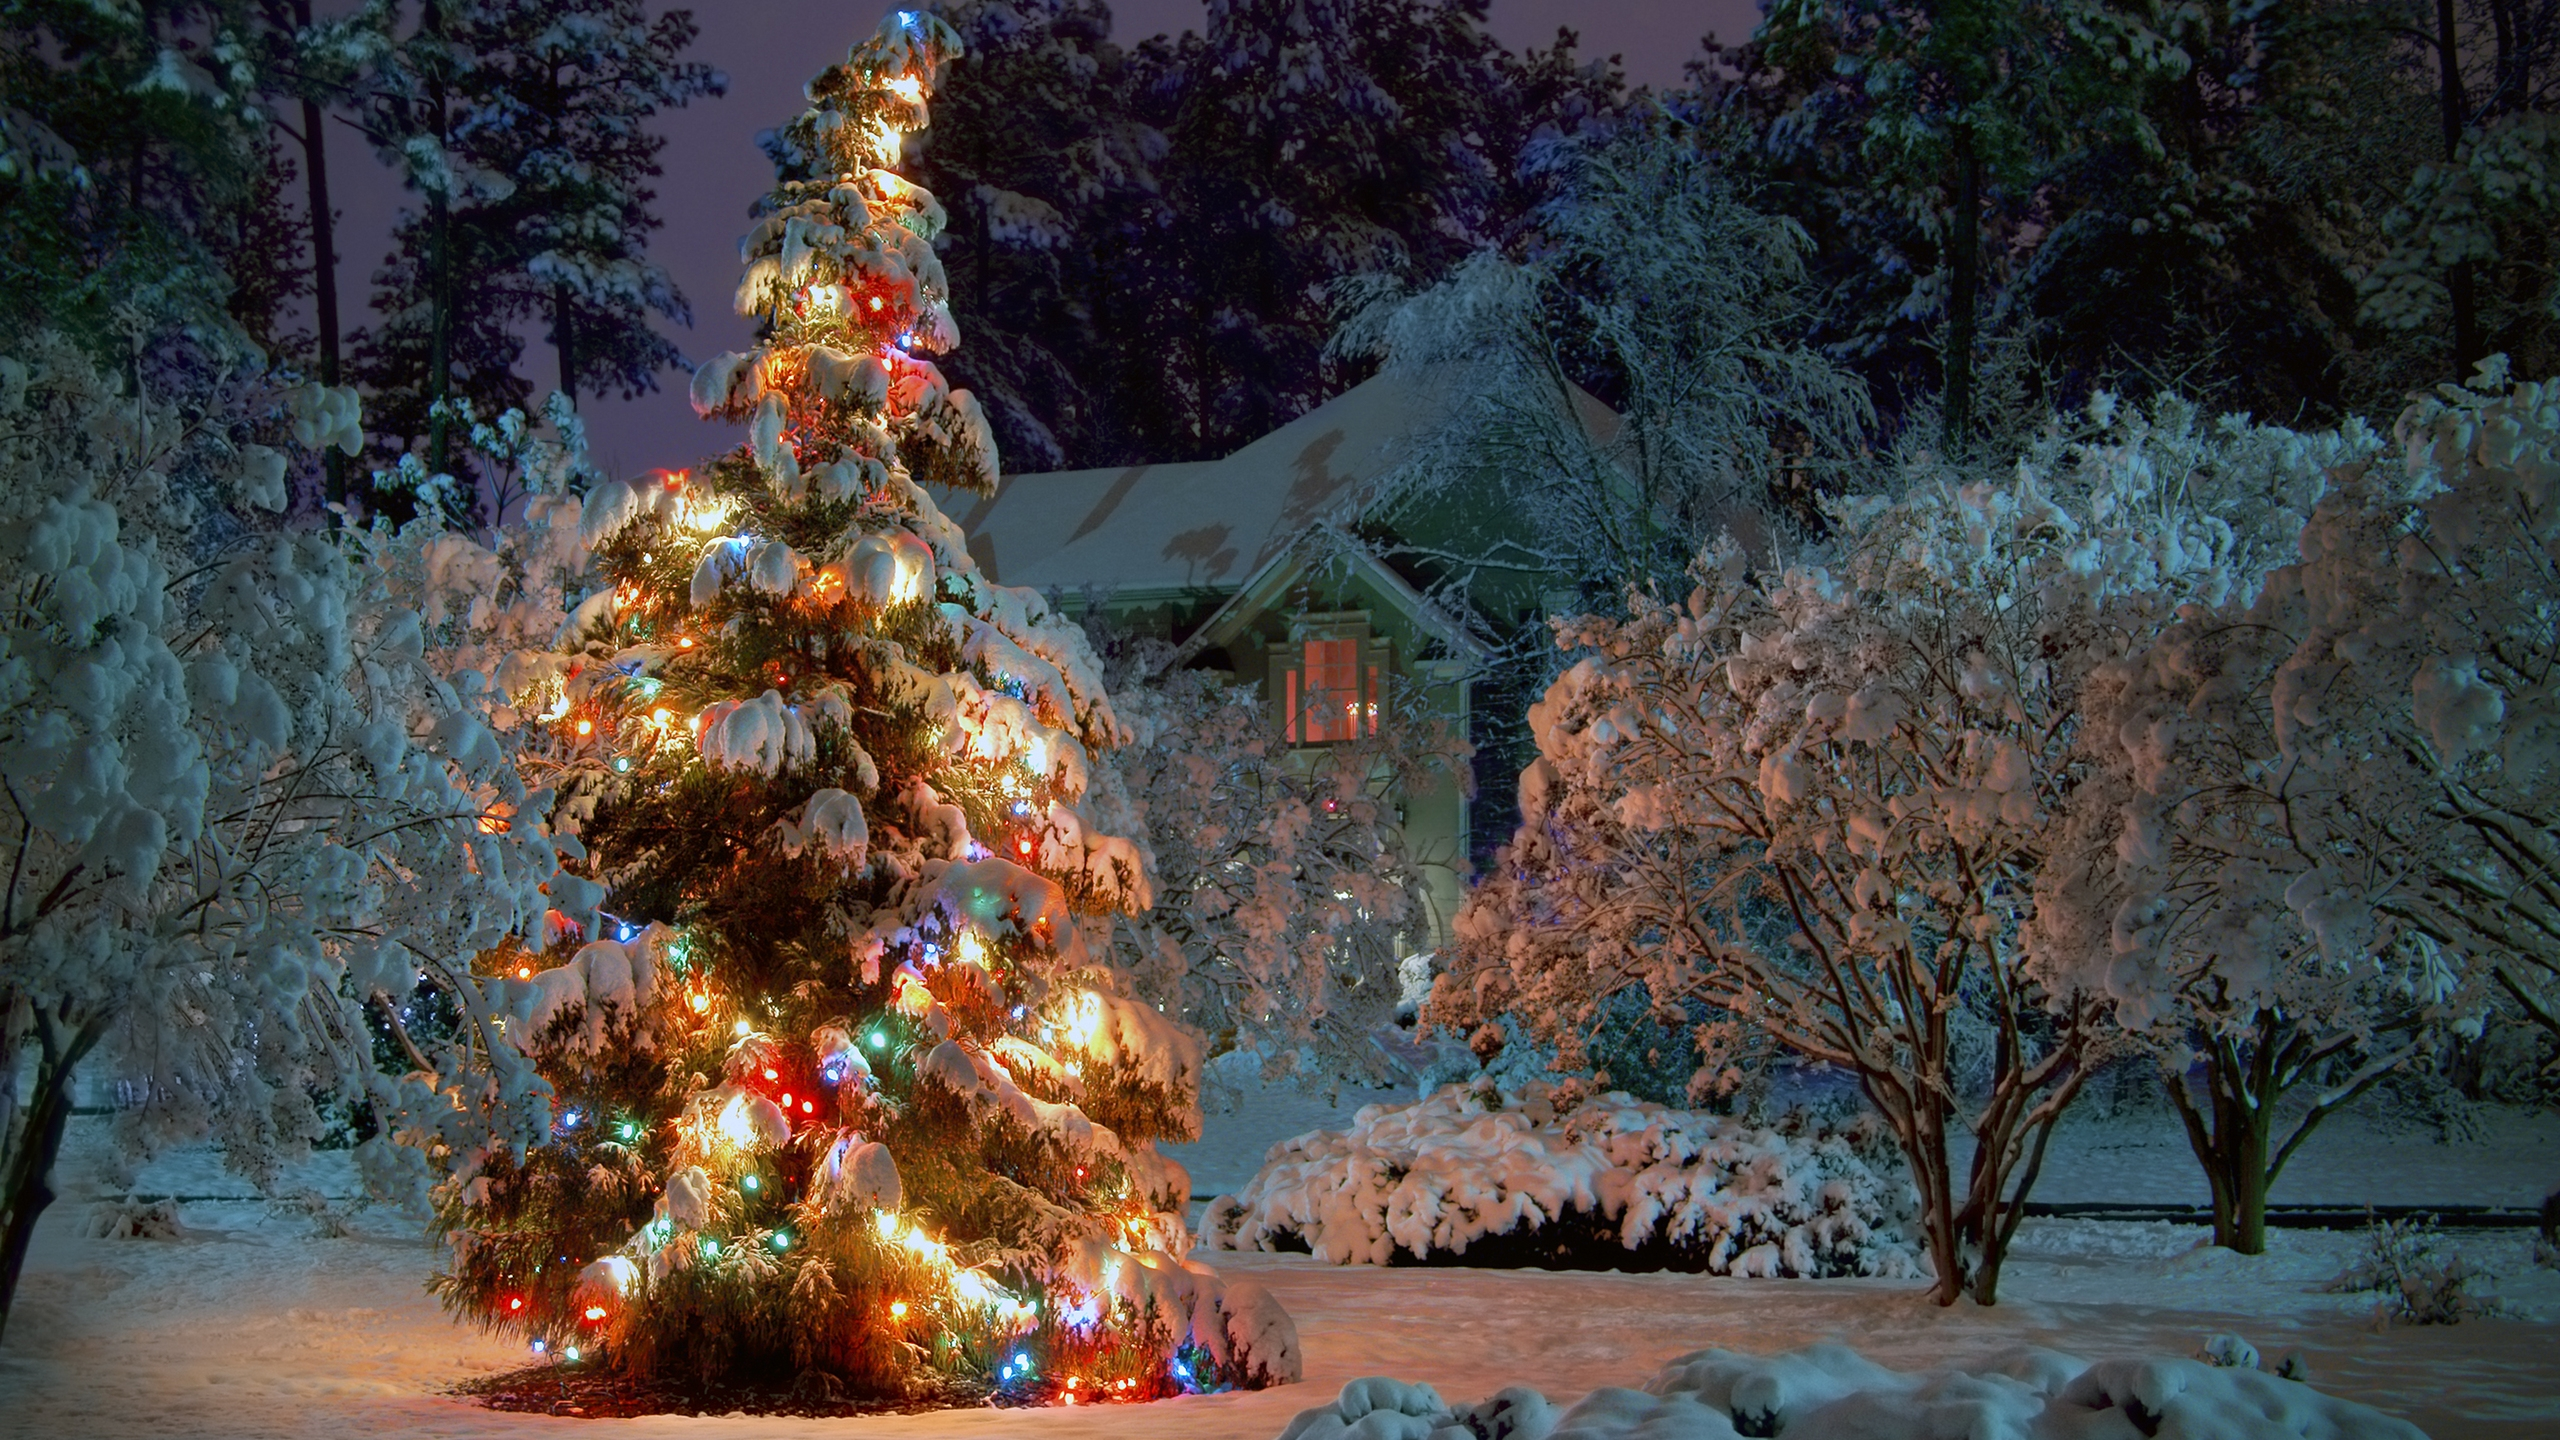 2560x1440 Outdoor Christmas tree desktop PC and Mac wallpaper 2560x1440